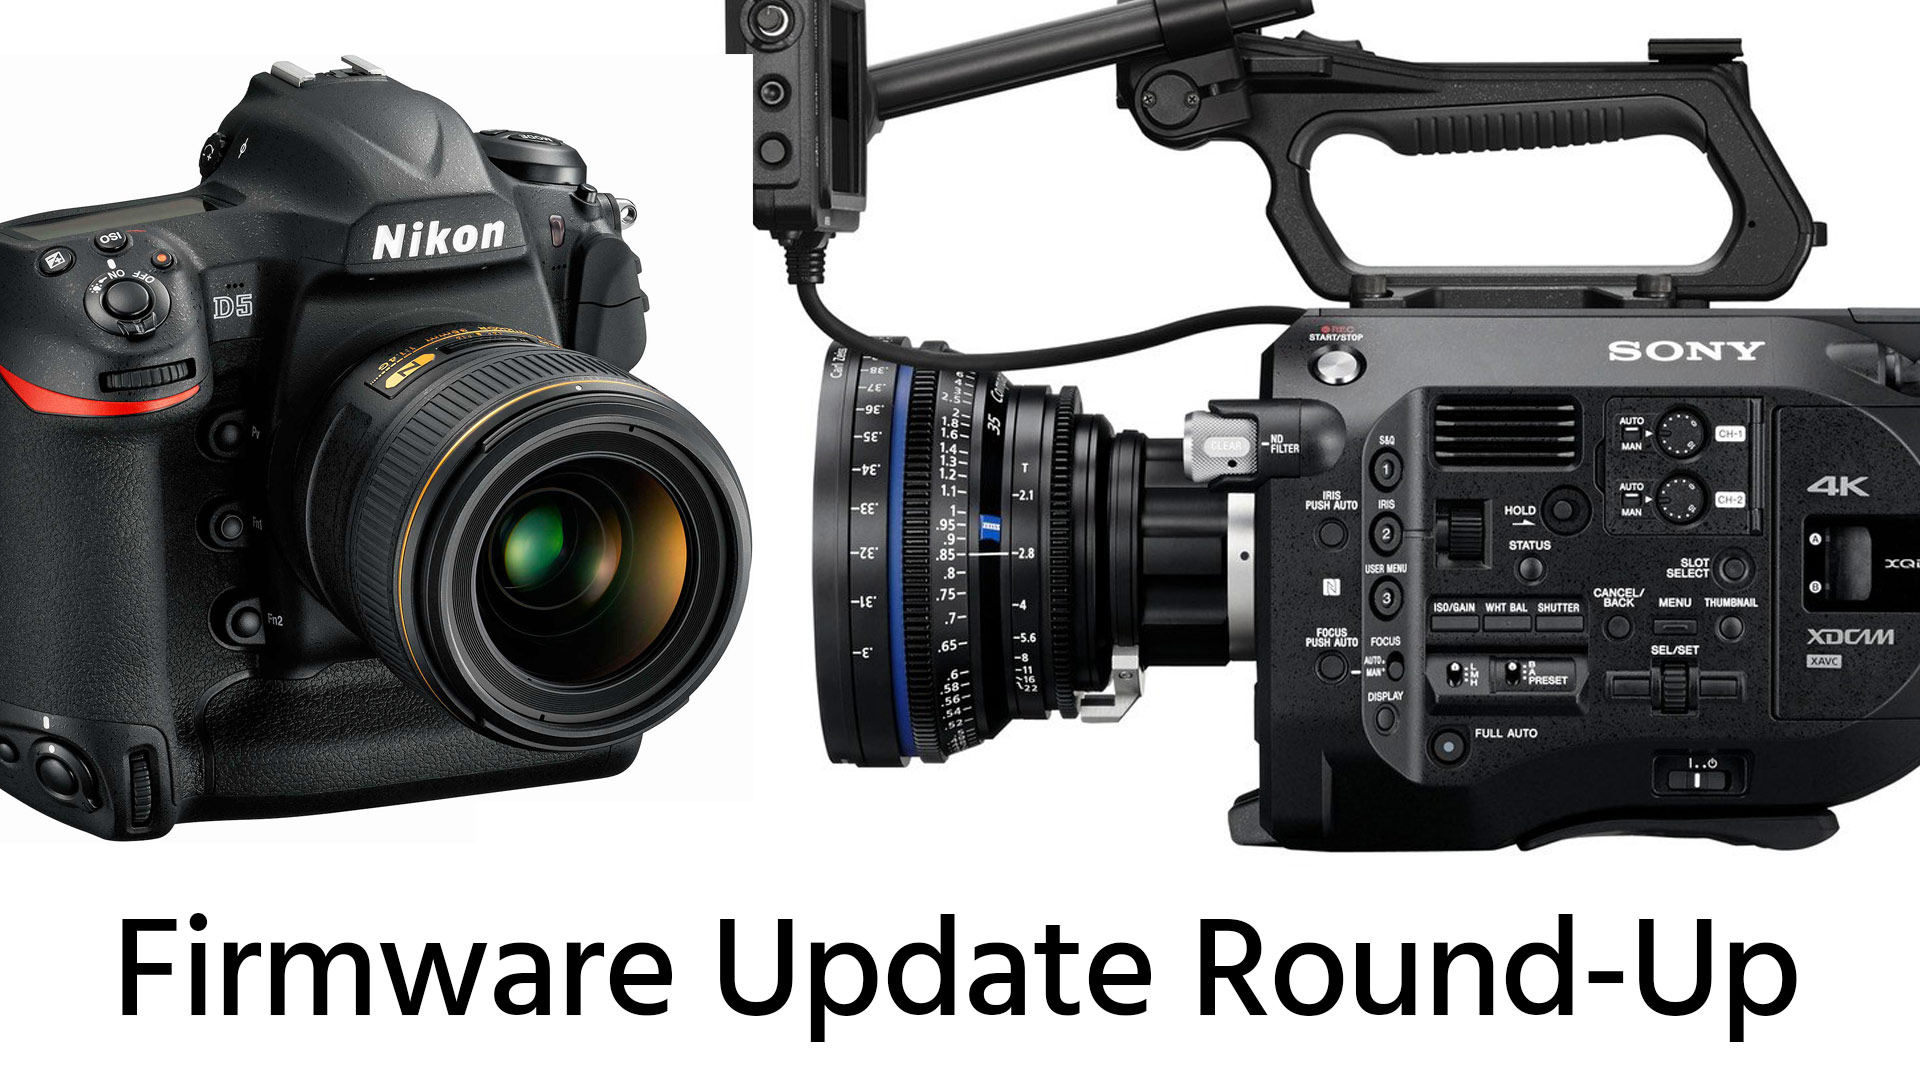 Firmware update round-up: nikon d5 v1. 10, sony fs7 v4. 0.